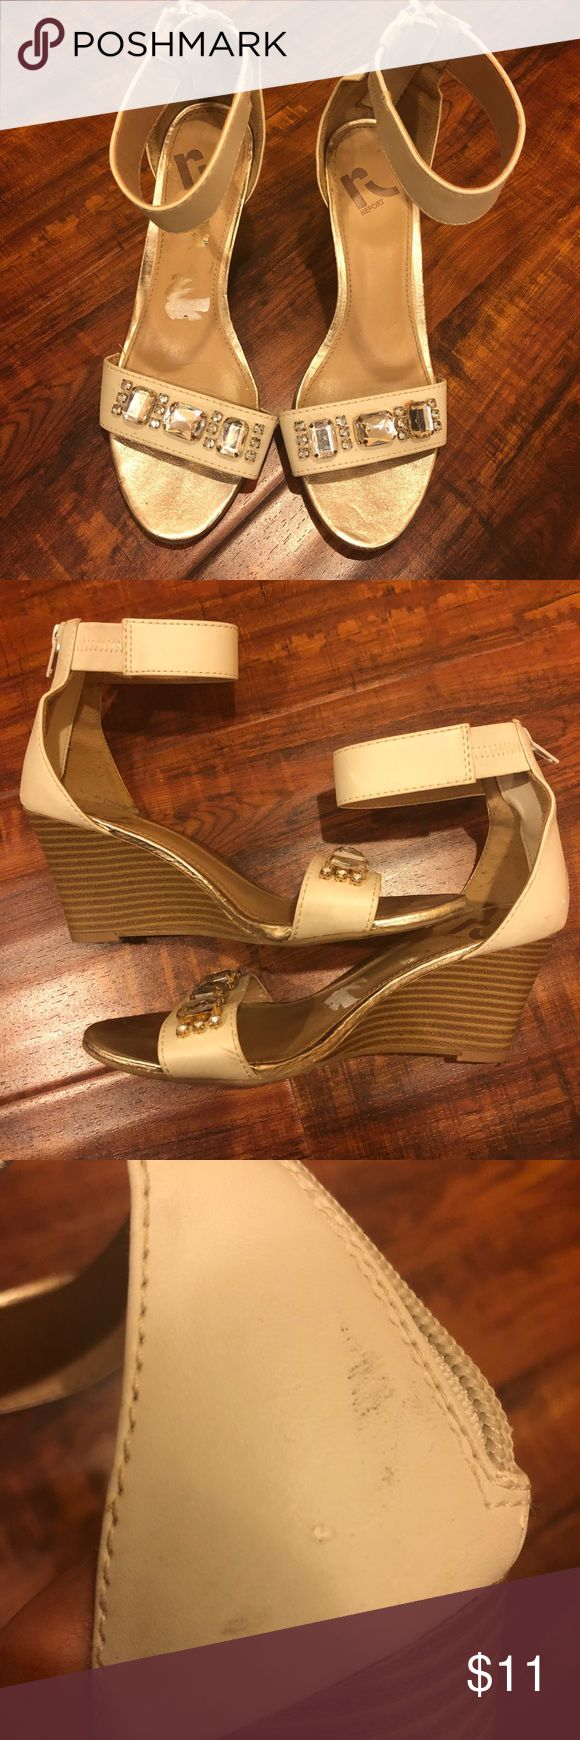 White Champagne Colored Wedges In used condition Has various scuff marks Still has lots of life left Feel free to ask questions Report Shoes Wedges